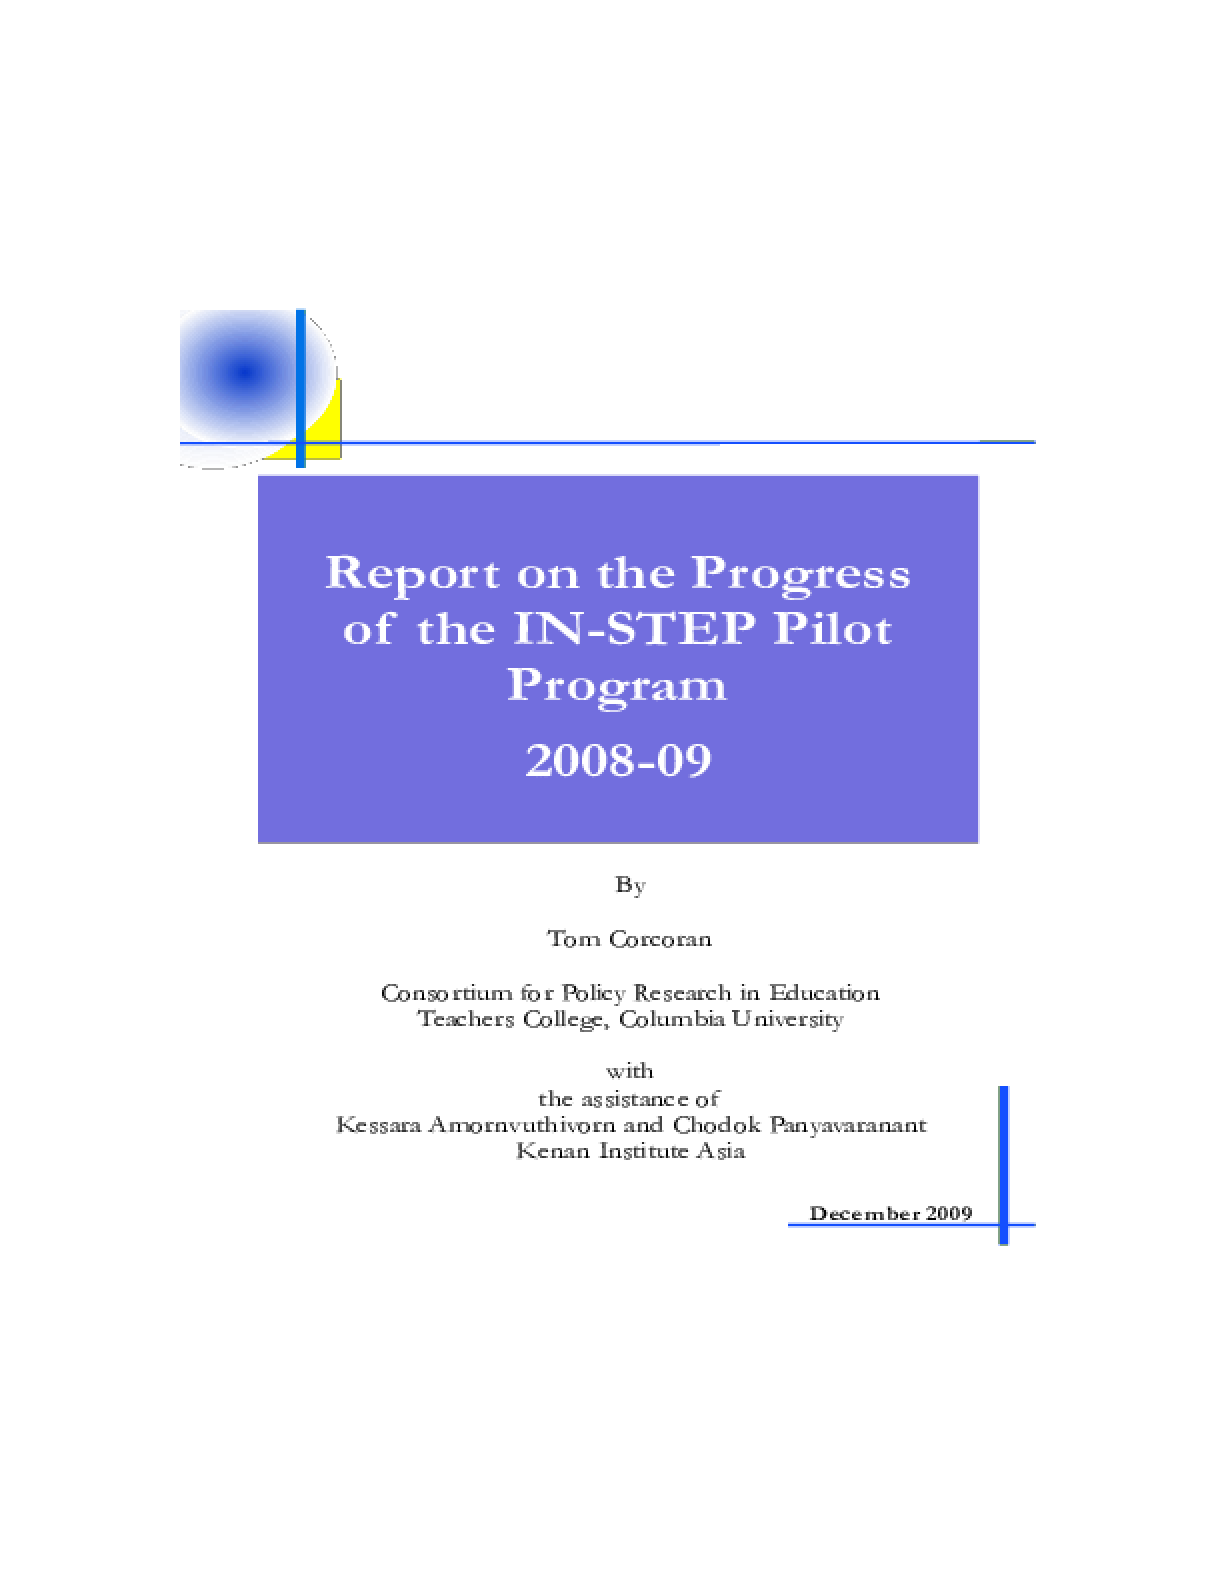 Report on the Progress of the IN-STEP Pilot Program, 2008-2009